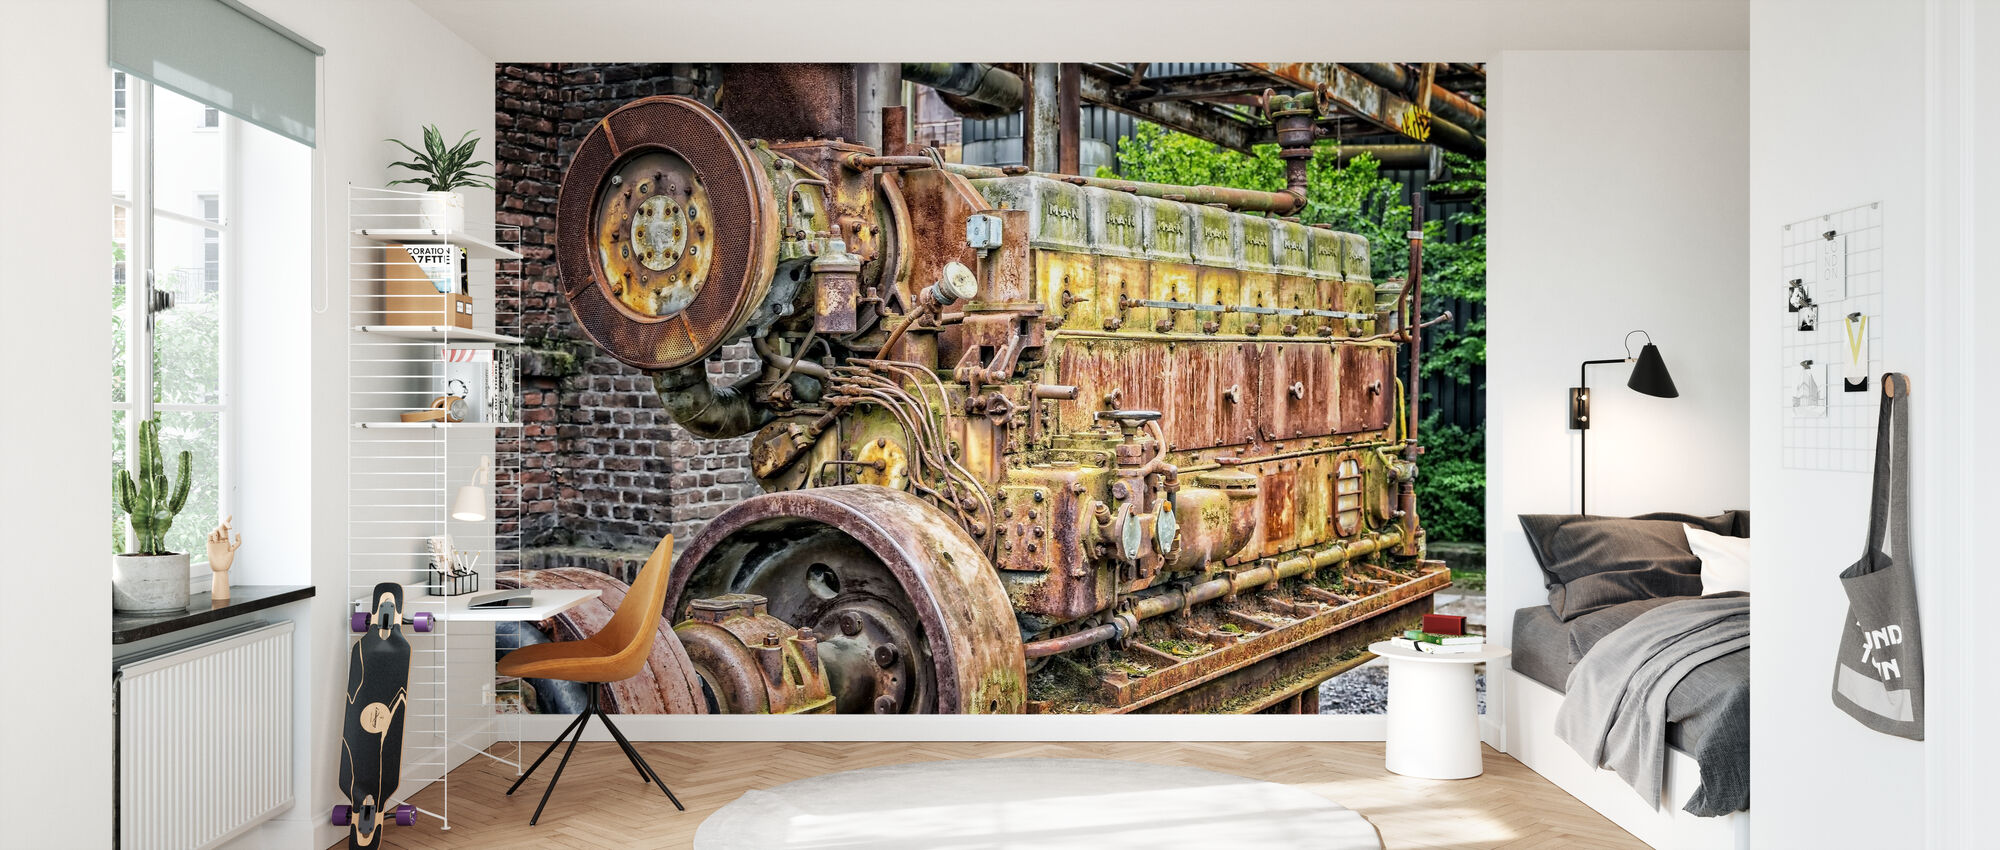 Rusty Machine Motor - Wallpaper - Kids Room